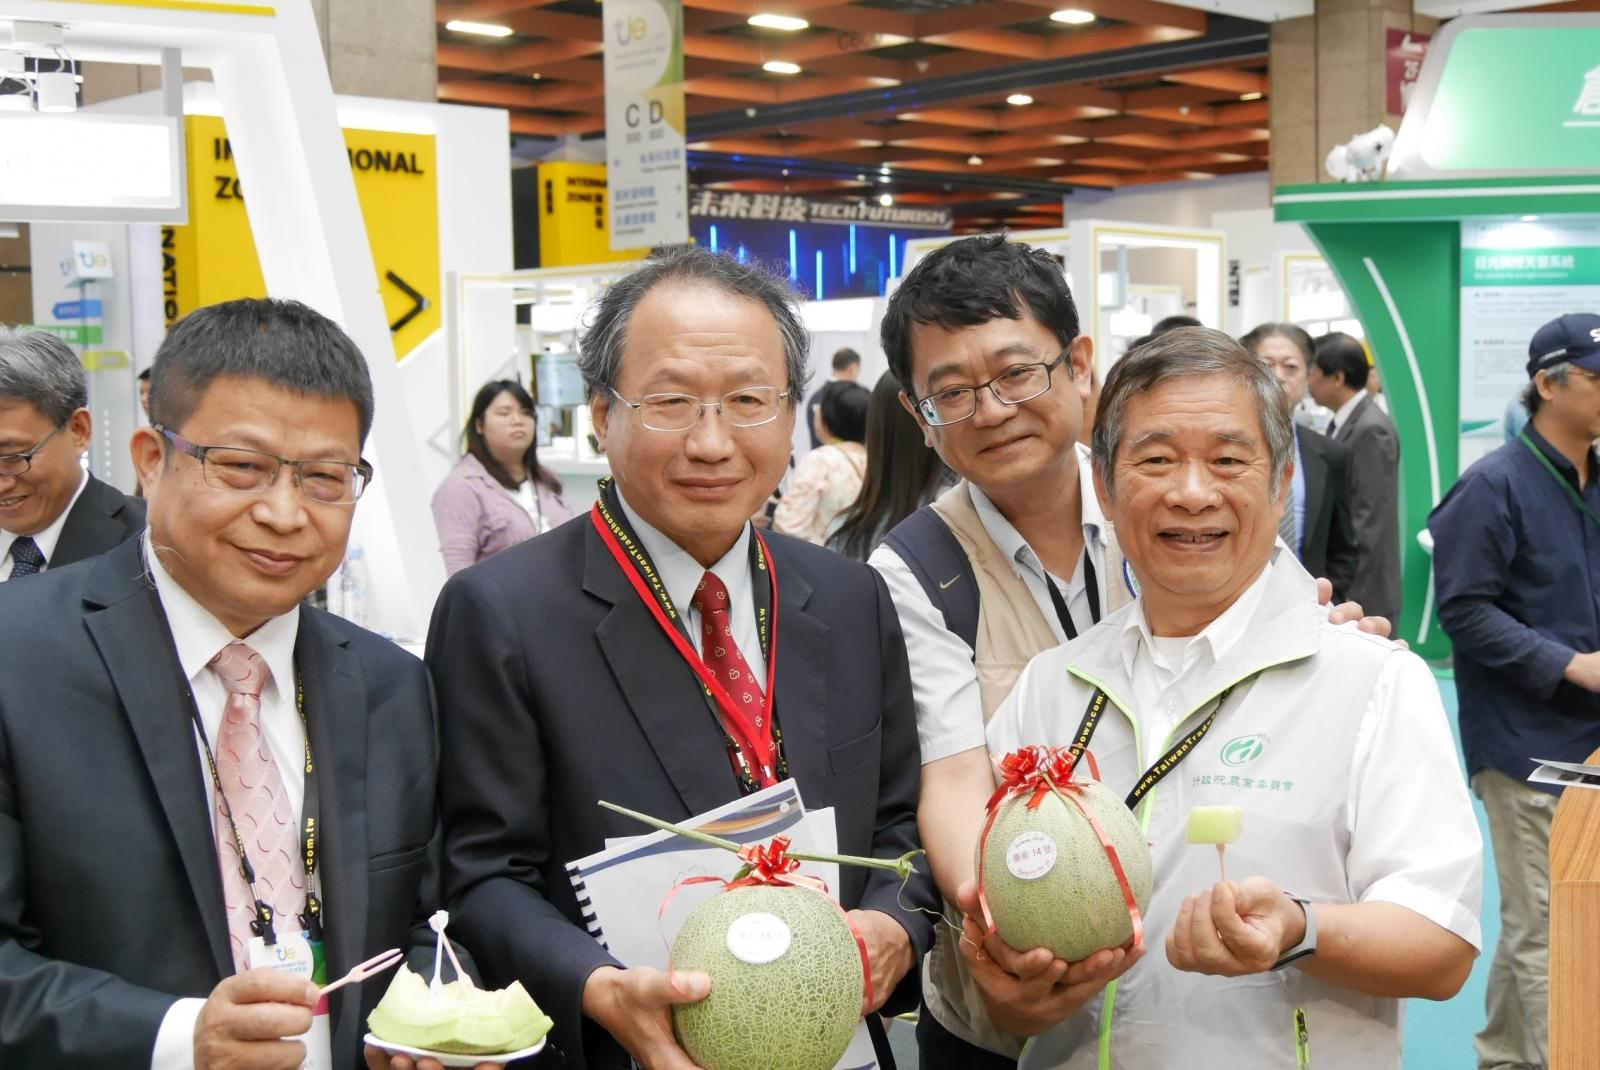 COA Deputy Minister Huang Chin-Cheng presented products.